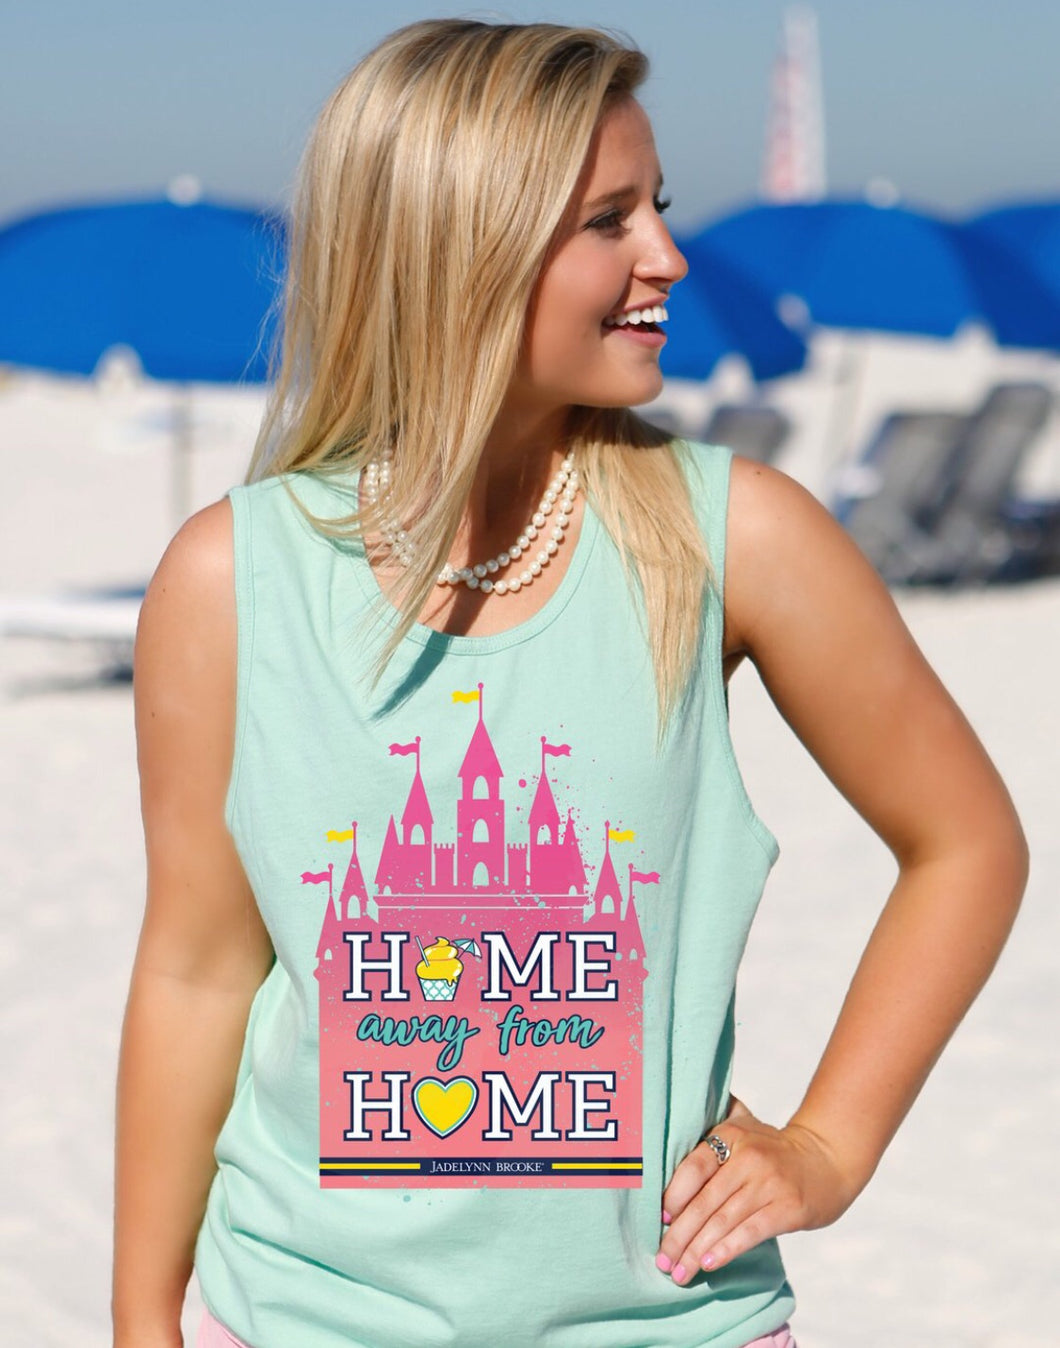 JLB ~ Disney Home away from Home tank top